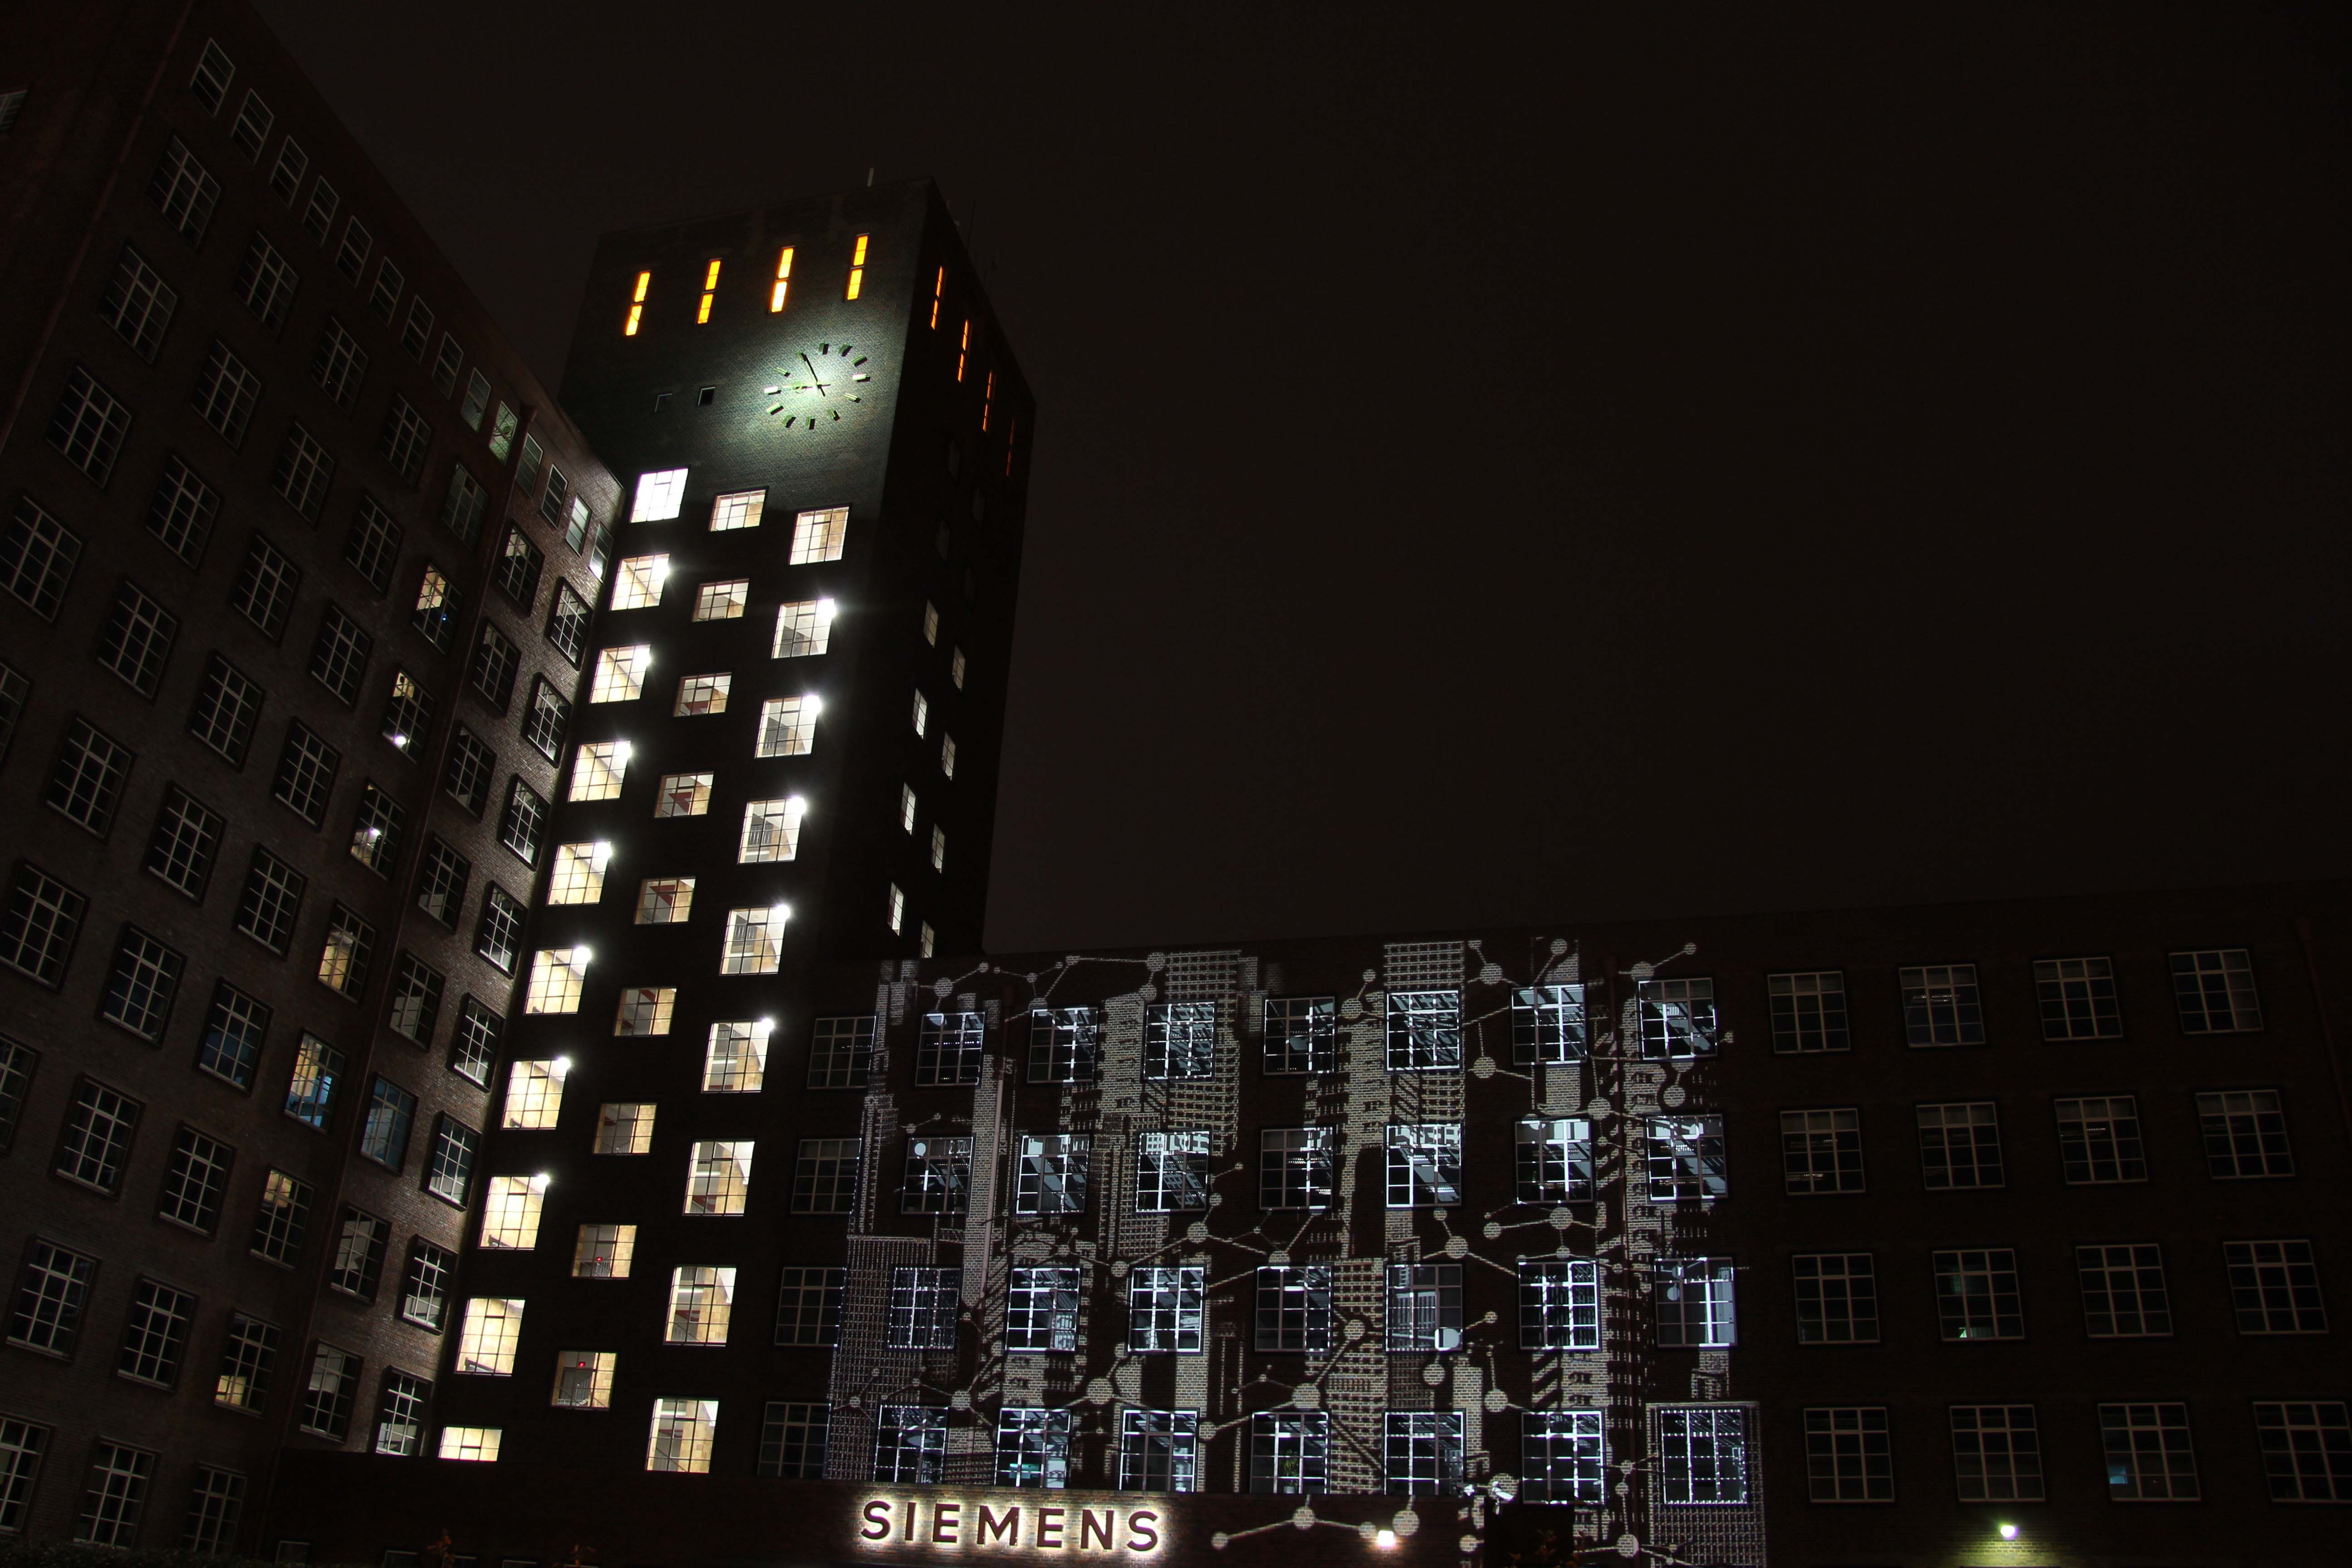 A light projection on the Siemens AG building at Siemensdamm 50 during the Festival of Lights in Berlin